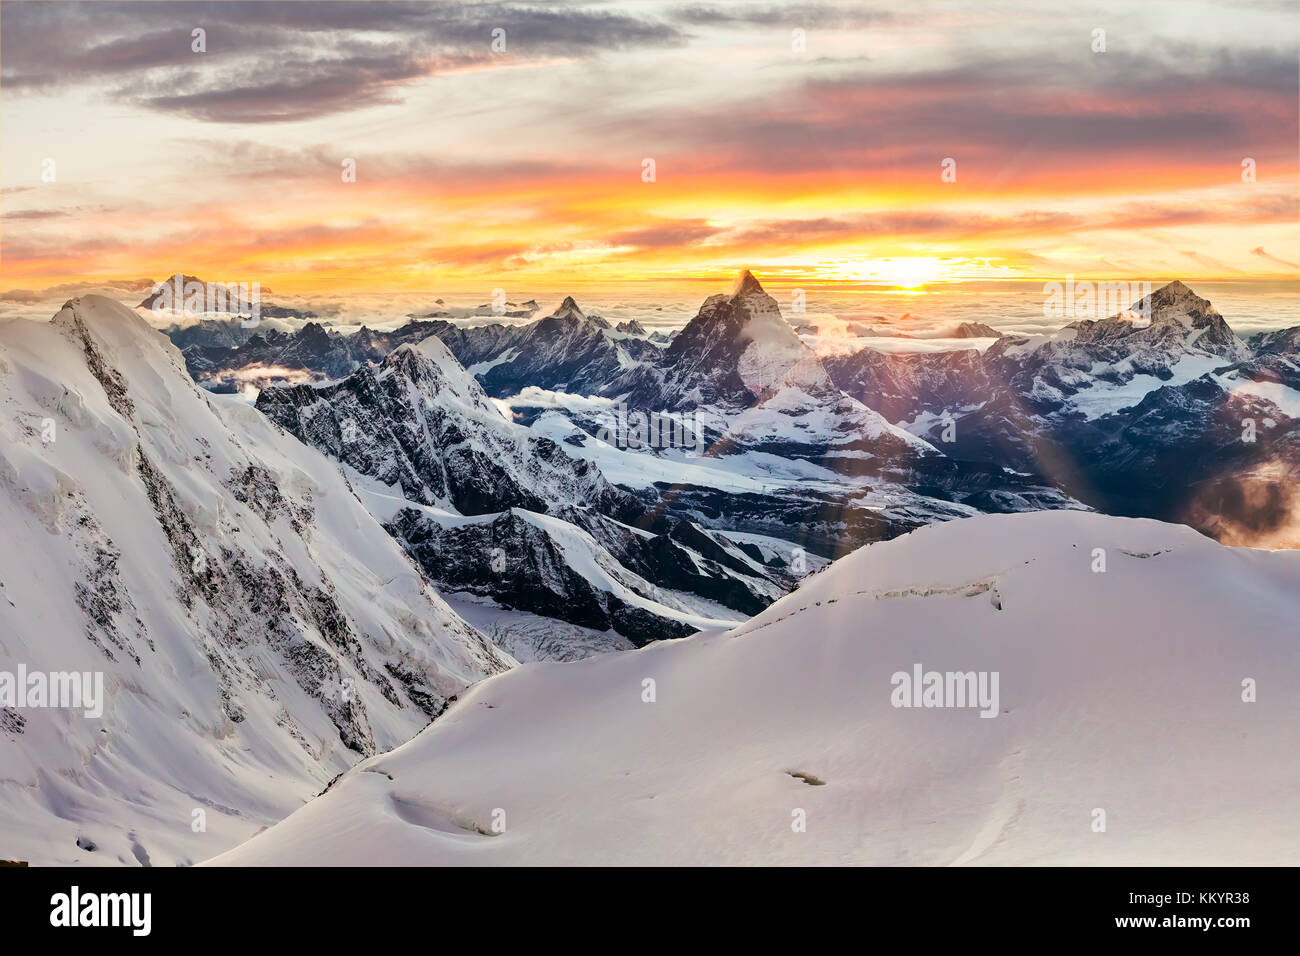 Sun setting behind the Matterhorn as seen form Monte Rosa, with mountains covered in snow - Stock Image